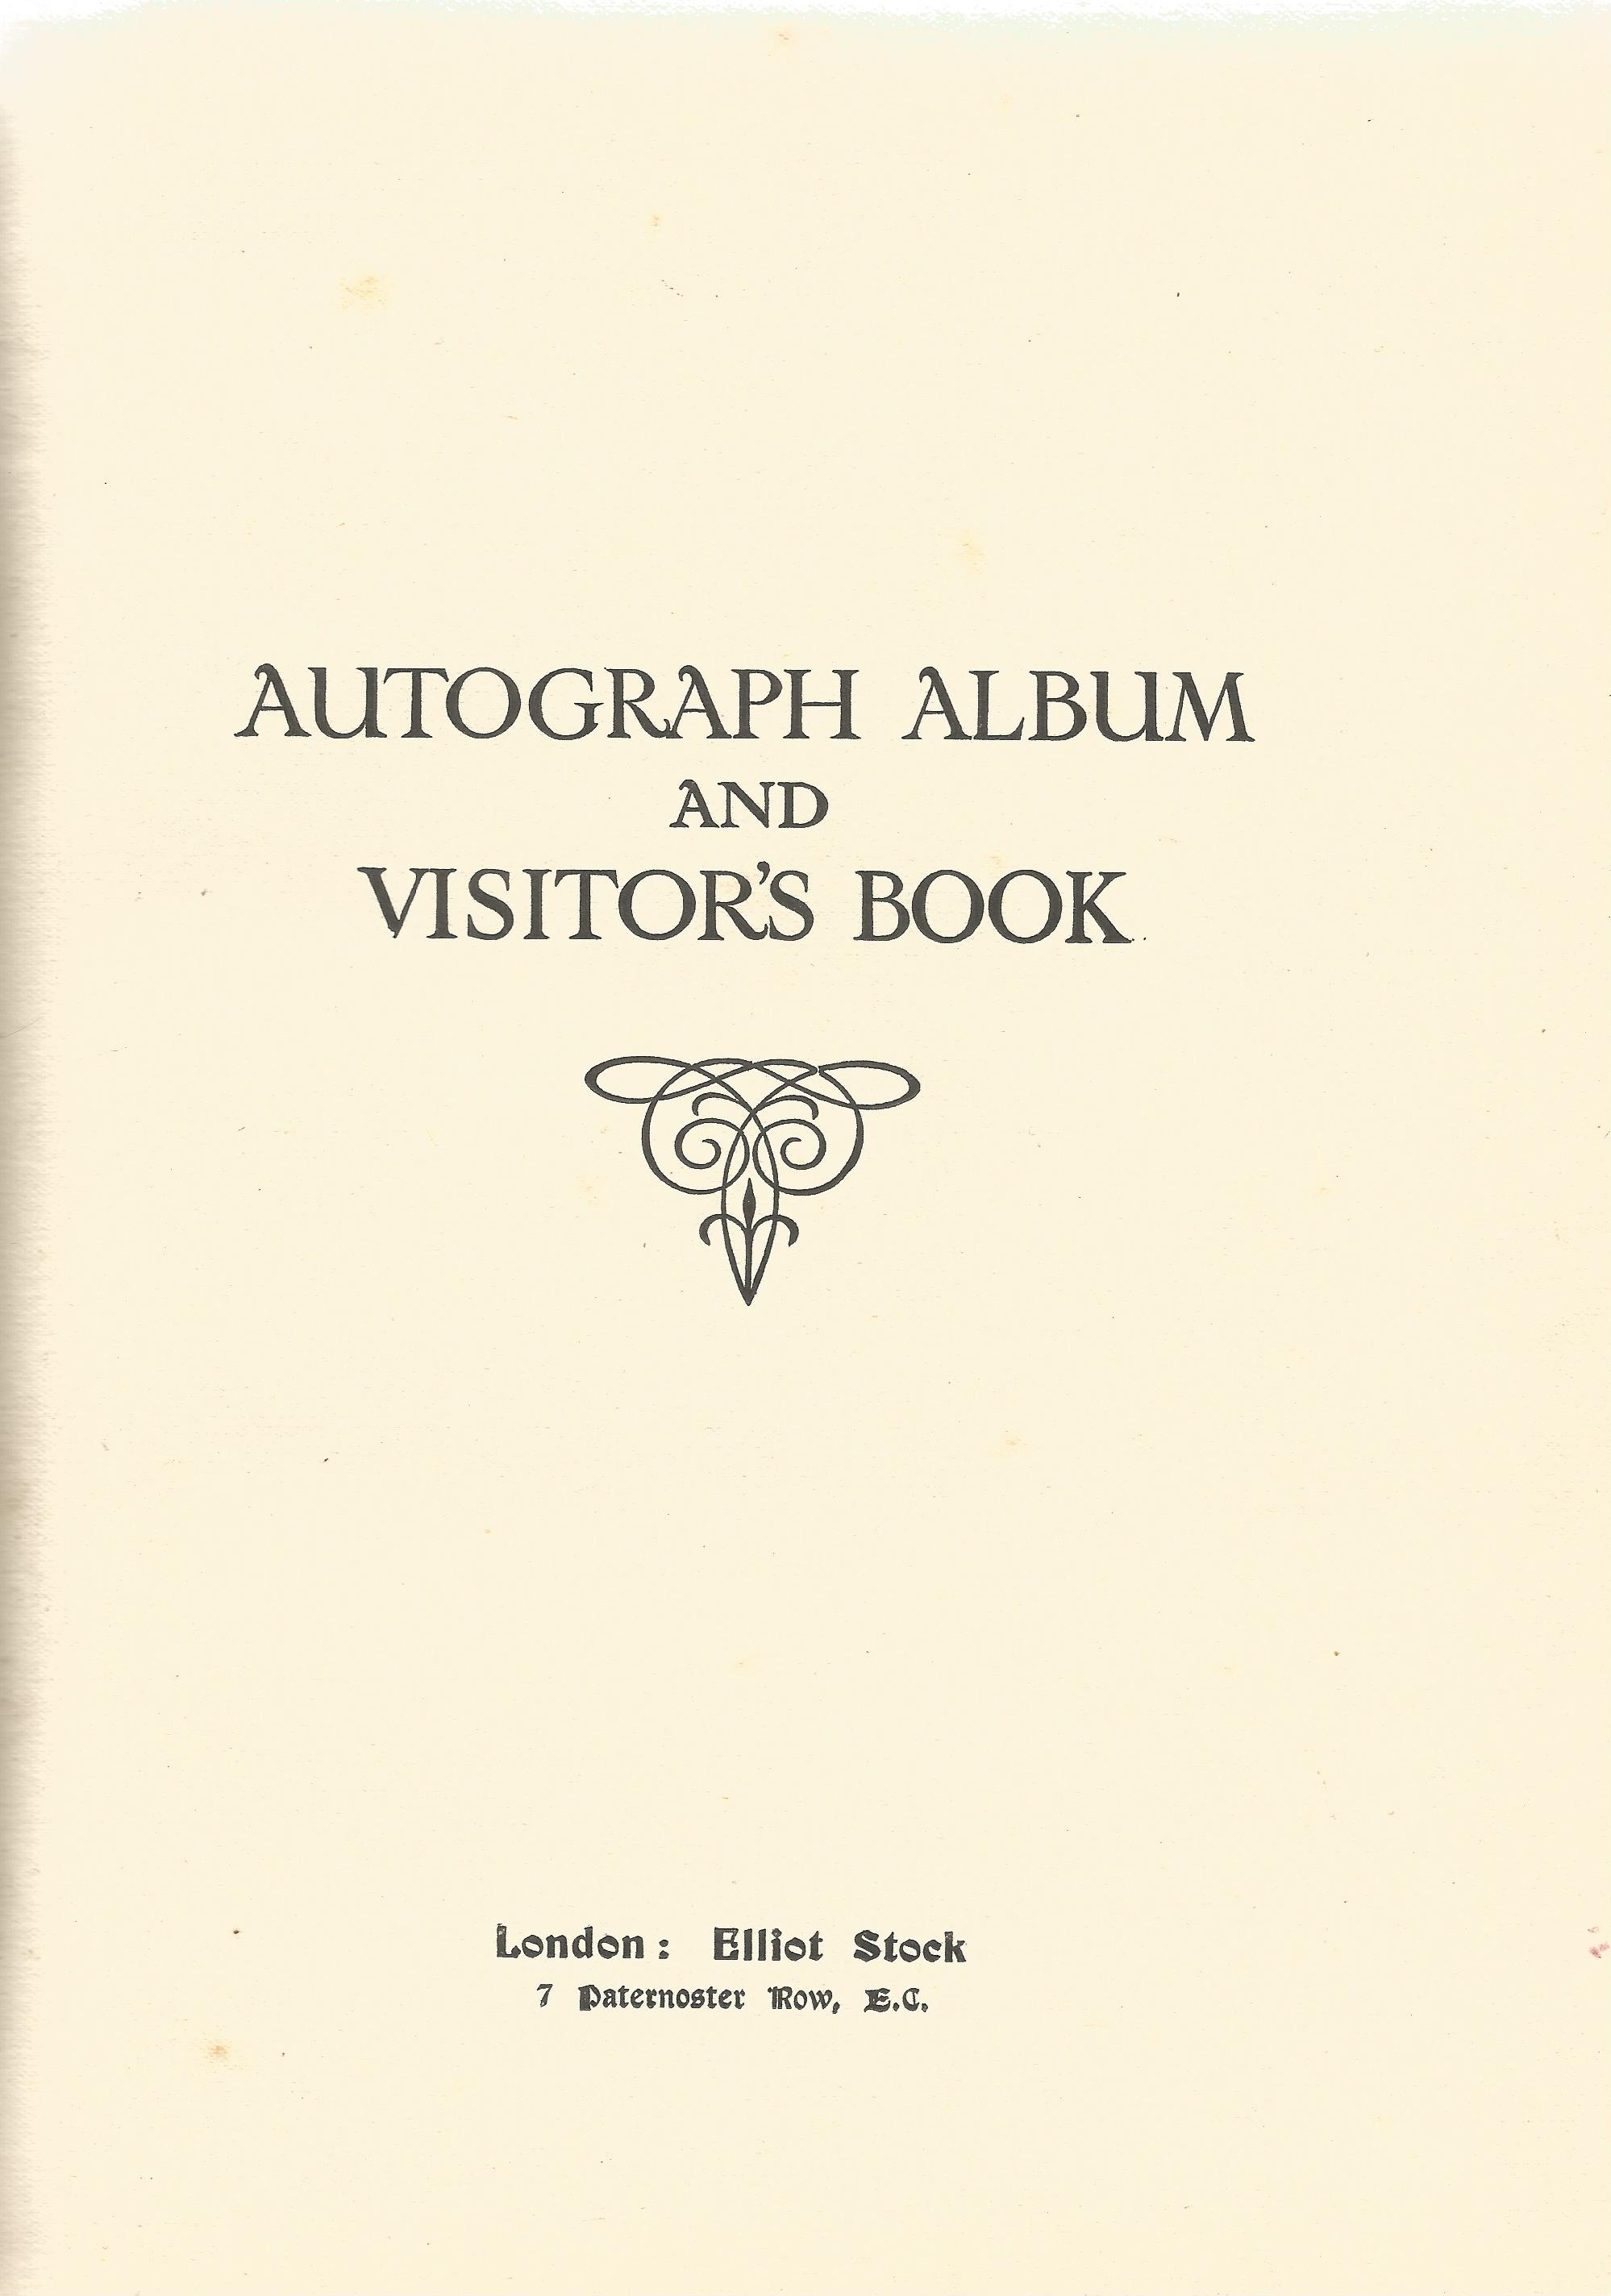 Autograph Album with Printed Pencil Drawings George & Dragon, Heraldic Emblems, Building & Masonic - Image 2 of 8